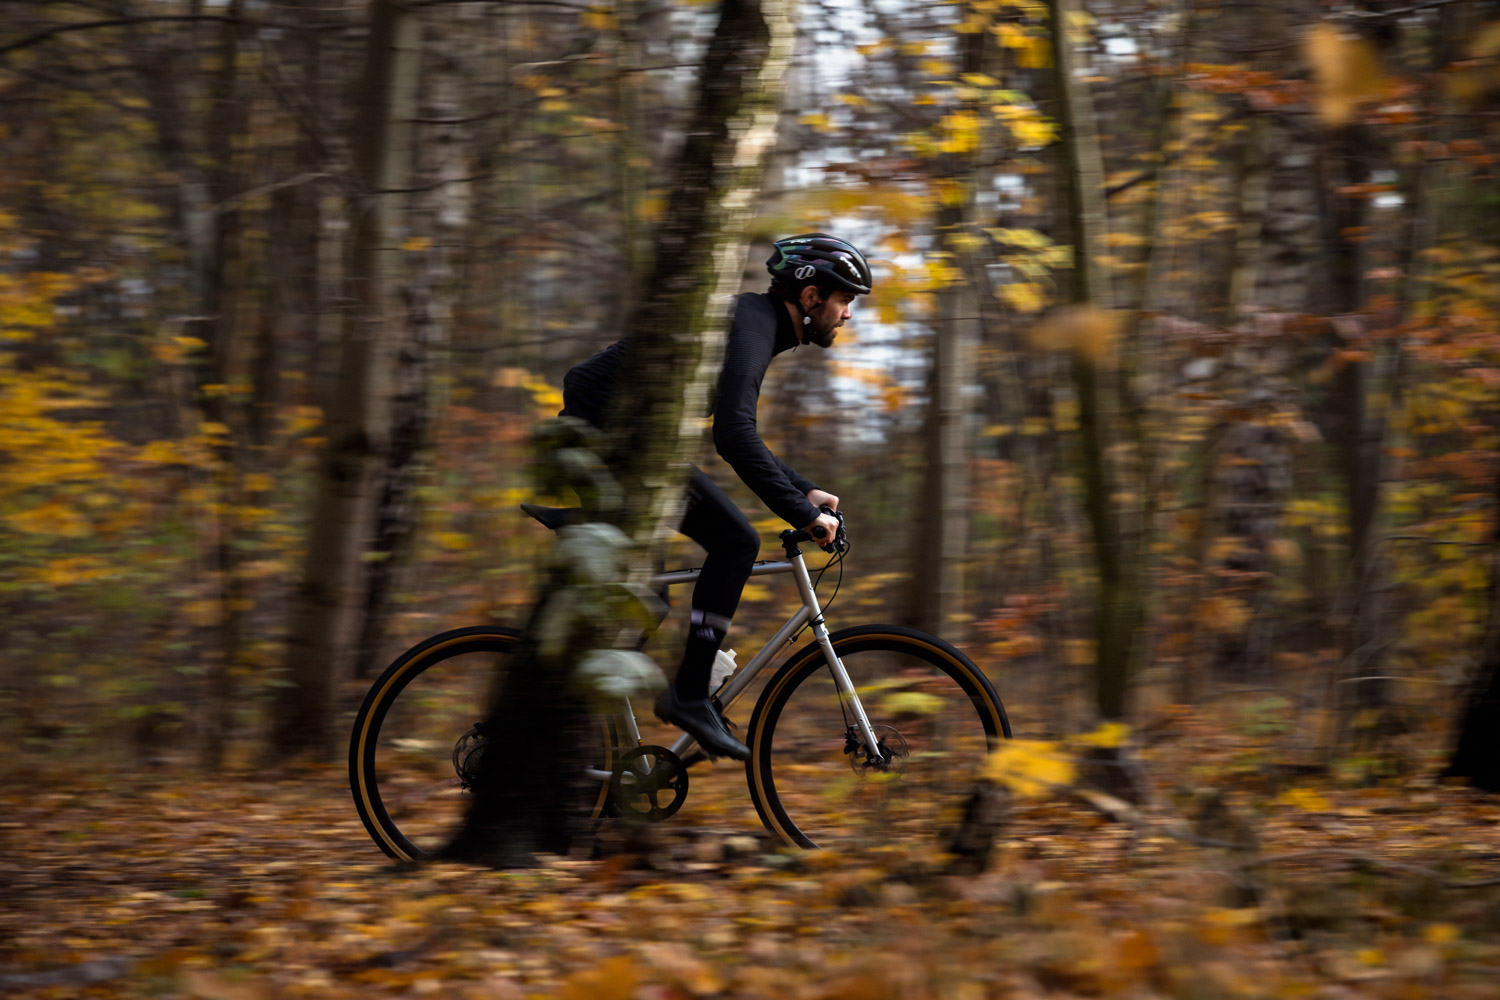 Picture of a man riding a gravel bike in the woods.He is riding a silver grey 8bar Mitte Steel